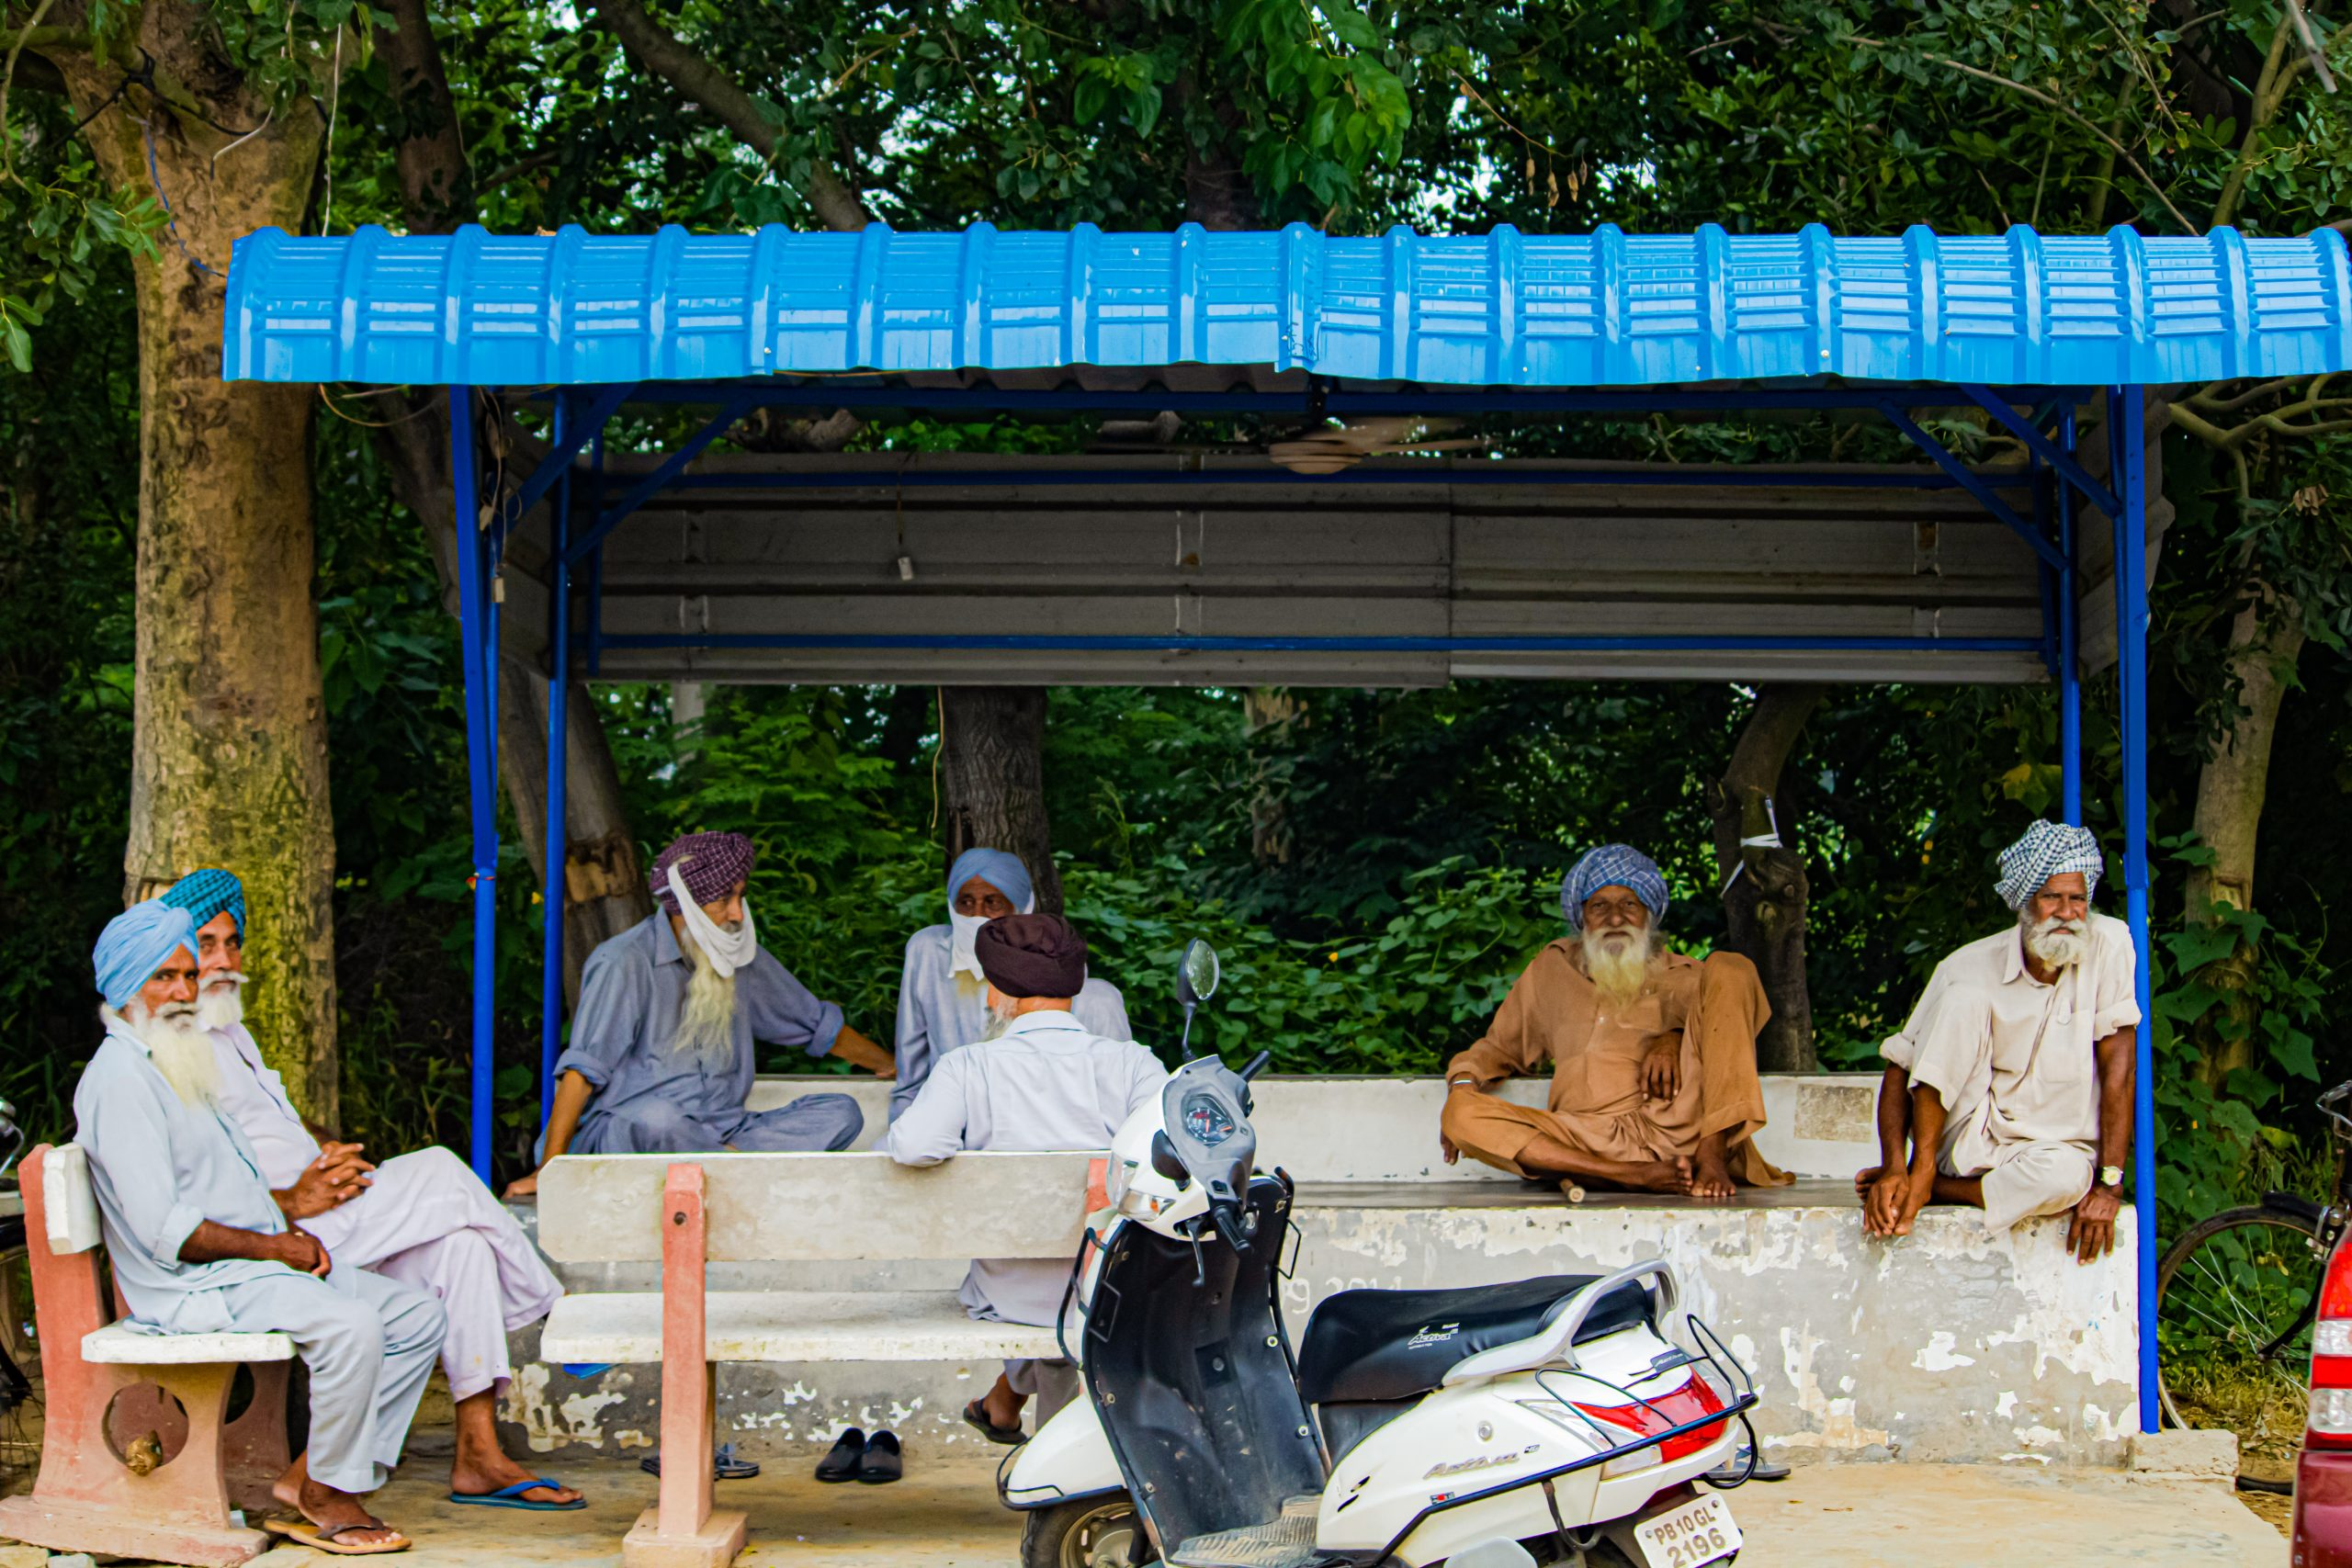 Men hanging out on a waiting shed